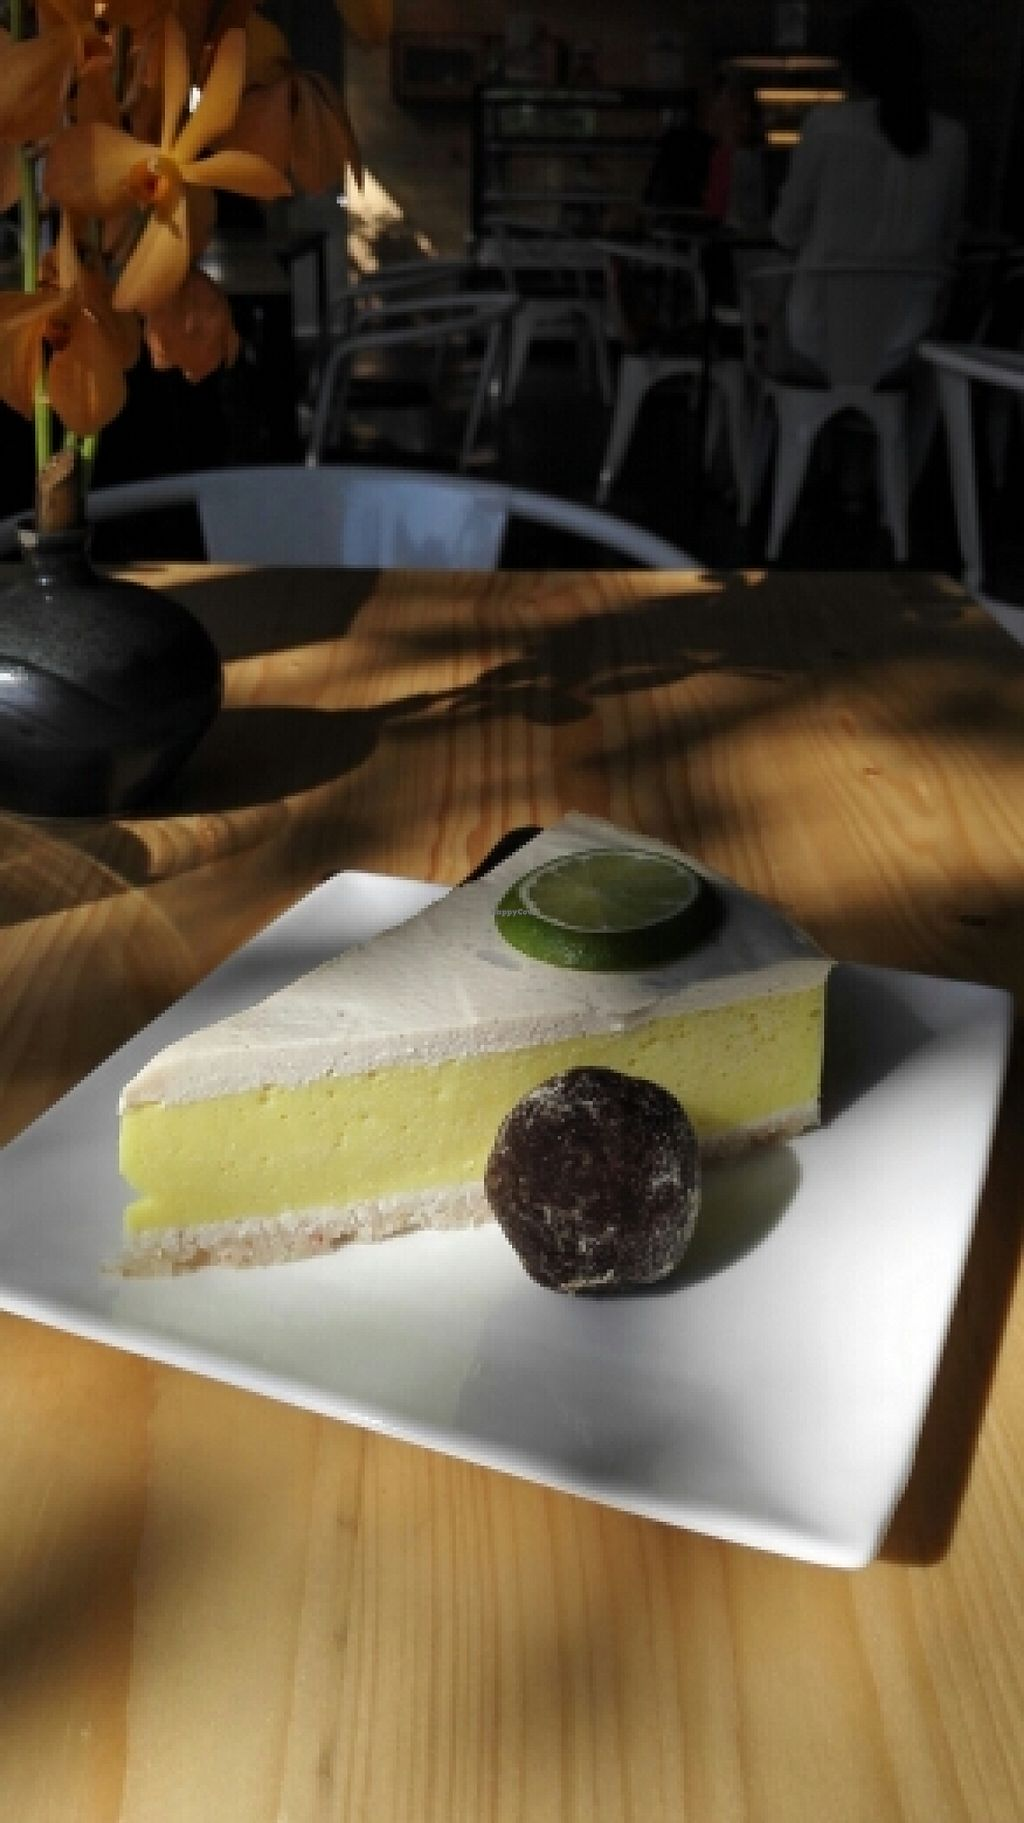 """Photo of Rasayana Raw Food Cafe  by <a href=""""/members/profile/HanniSchmidt"""">HanniSchmidt</a> <br/>lemon tart and a mocacao ball <br/> January 16, 2016  - <a href='/contact/abuse/image/3847/132567'>Report</a>"""